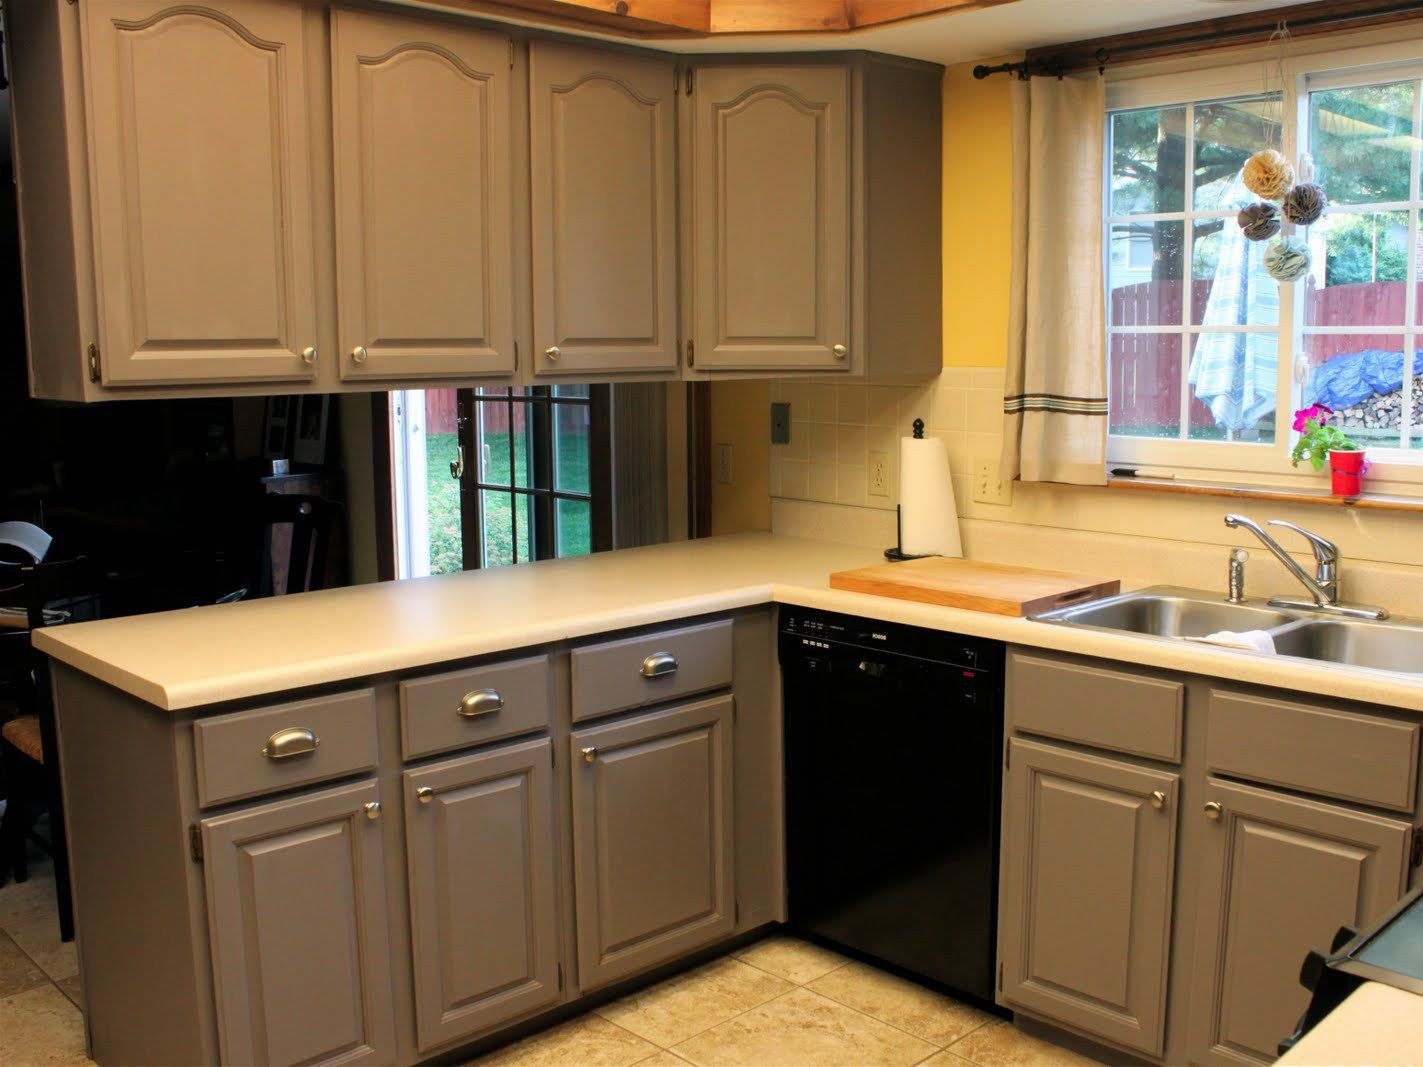 Best Diy Kitchen Cabinet Ideas And Designs For 2019 And Diy Kitchen Cabinets Ottawa Two To Diy Kitchen Cabinets Painting Diy Kitchen Cabinets Kitchen Cabinets